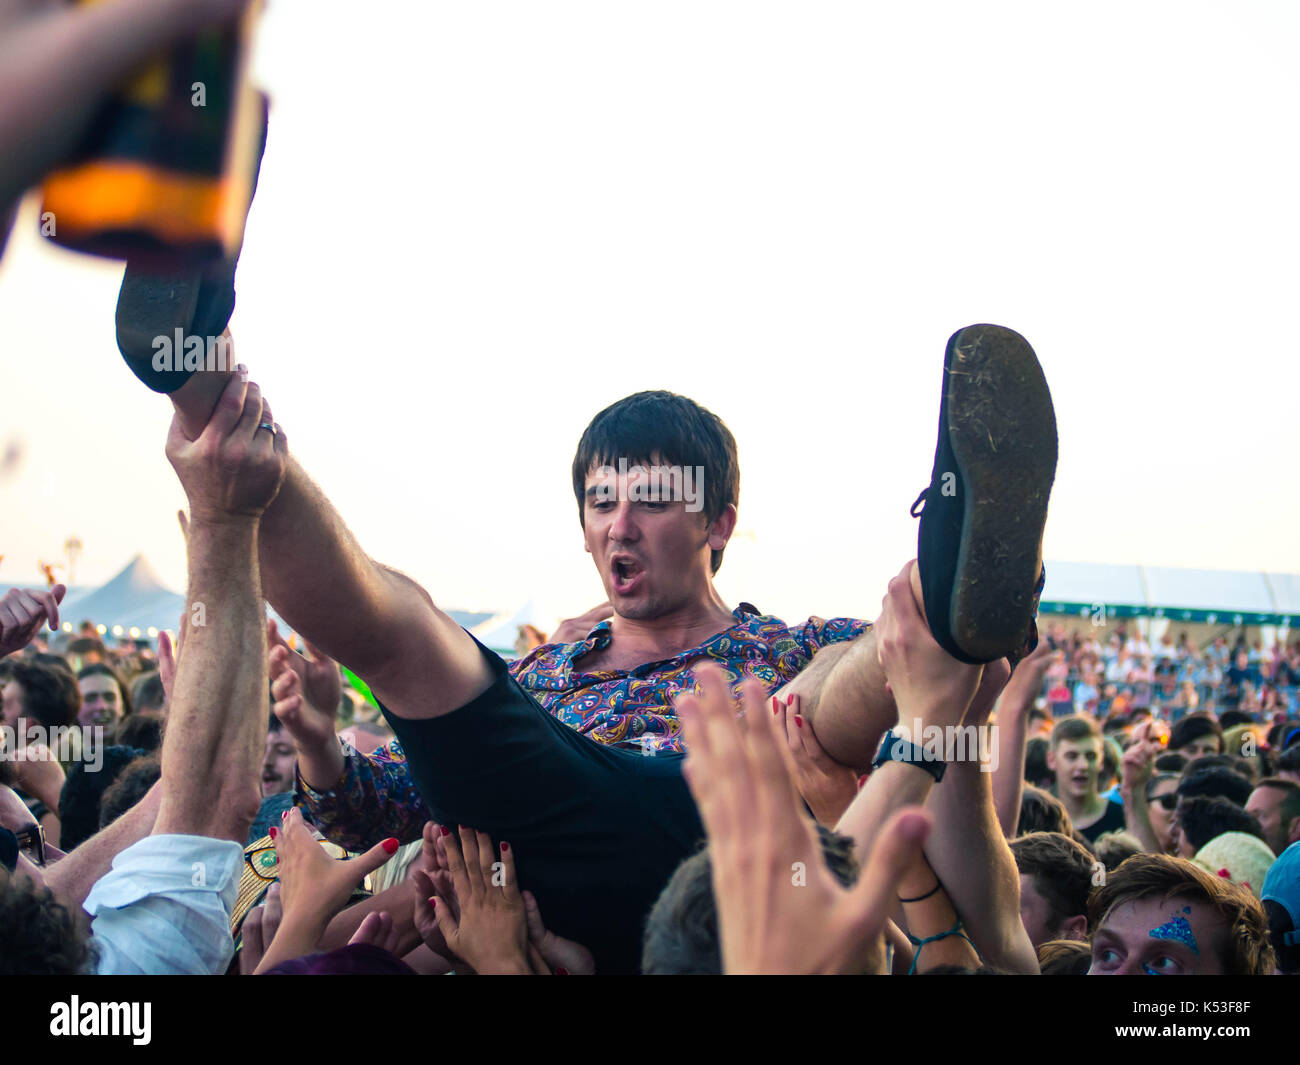 a-young-man-crowd-surfs-over-the-audience-at-the-victorious-music-K53F8F.jpg